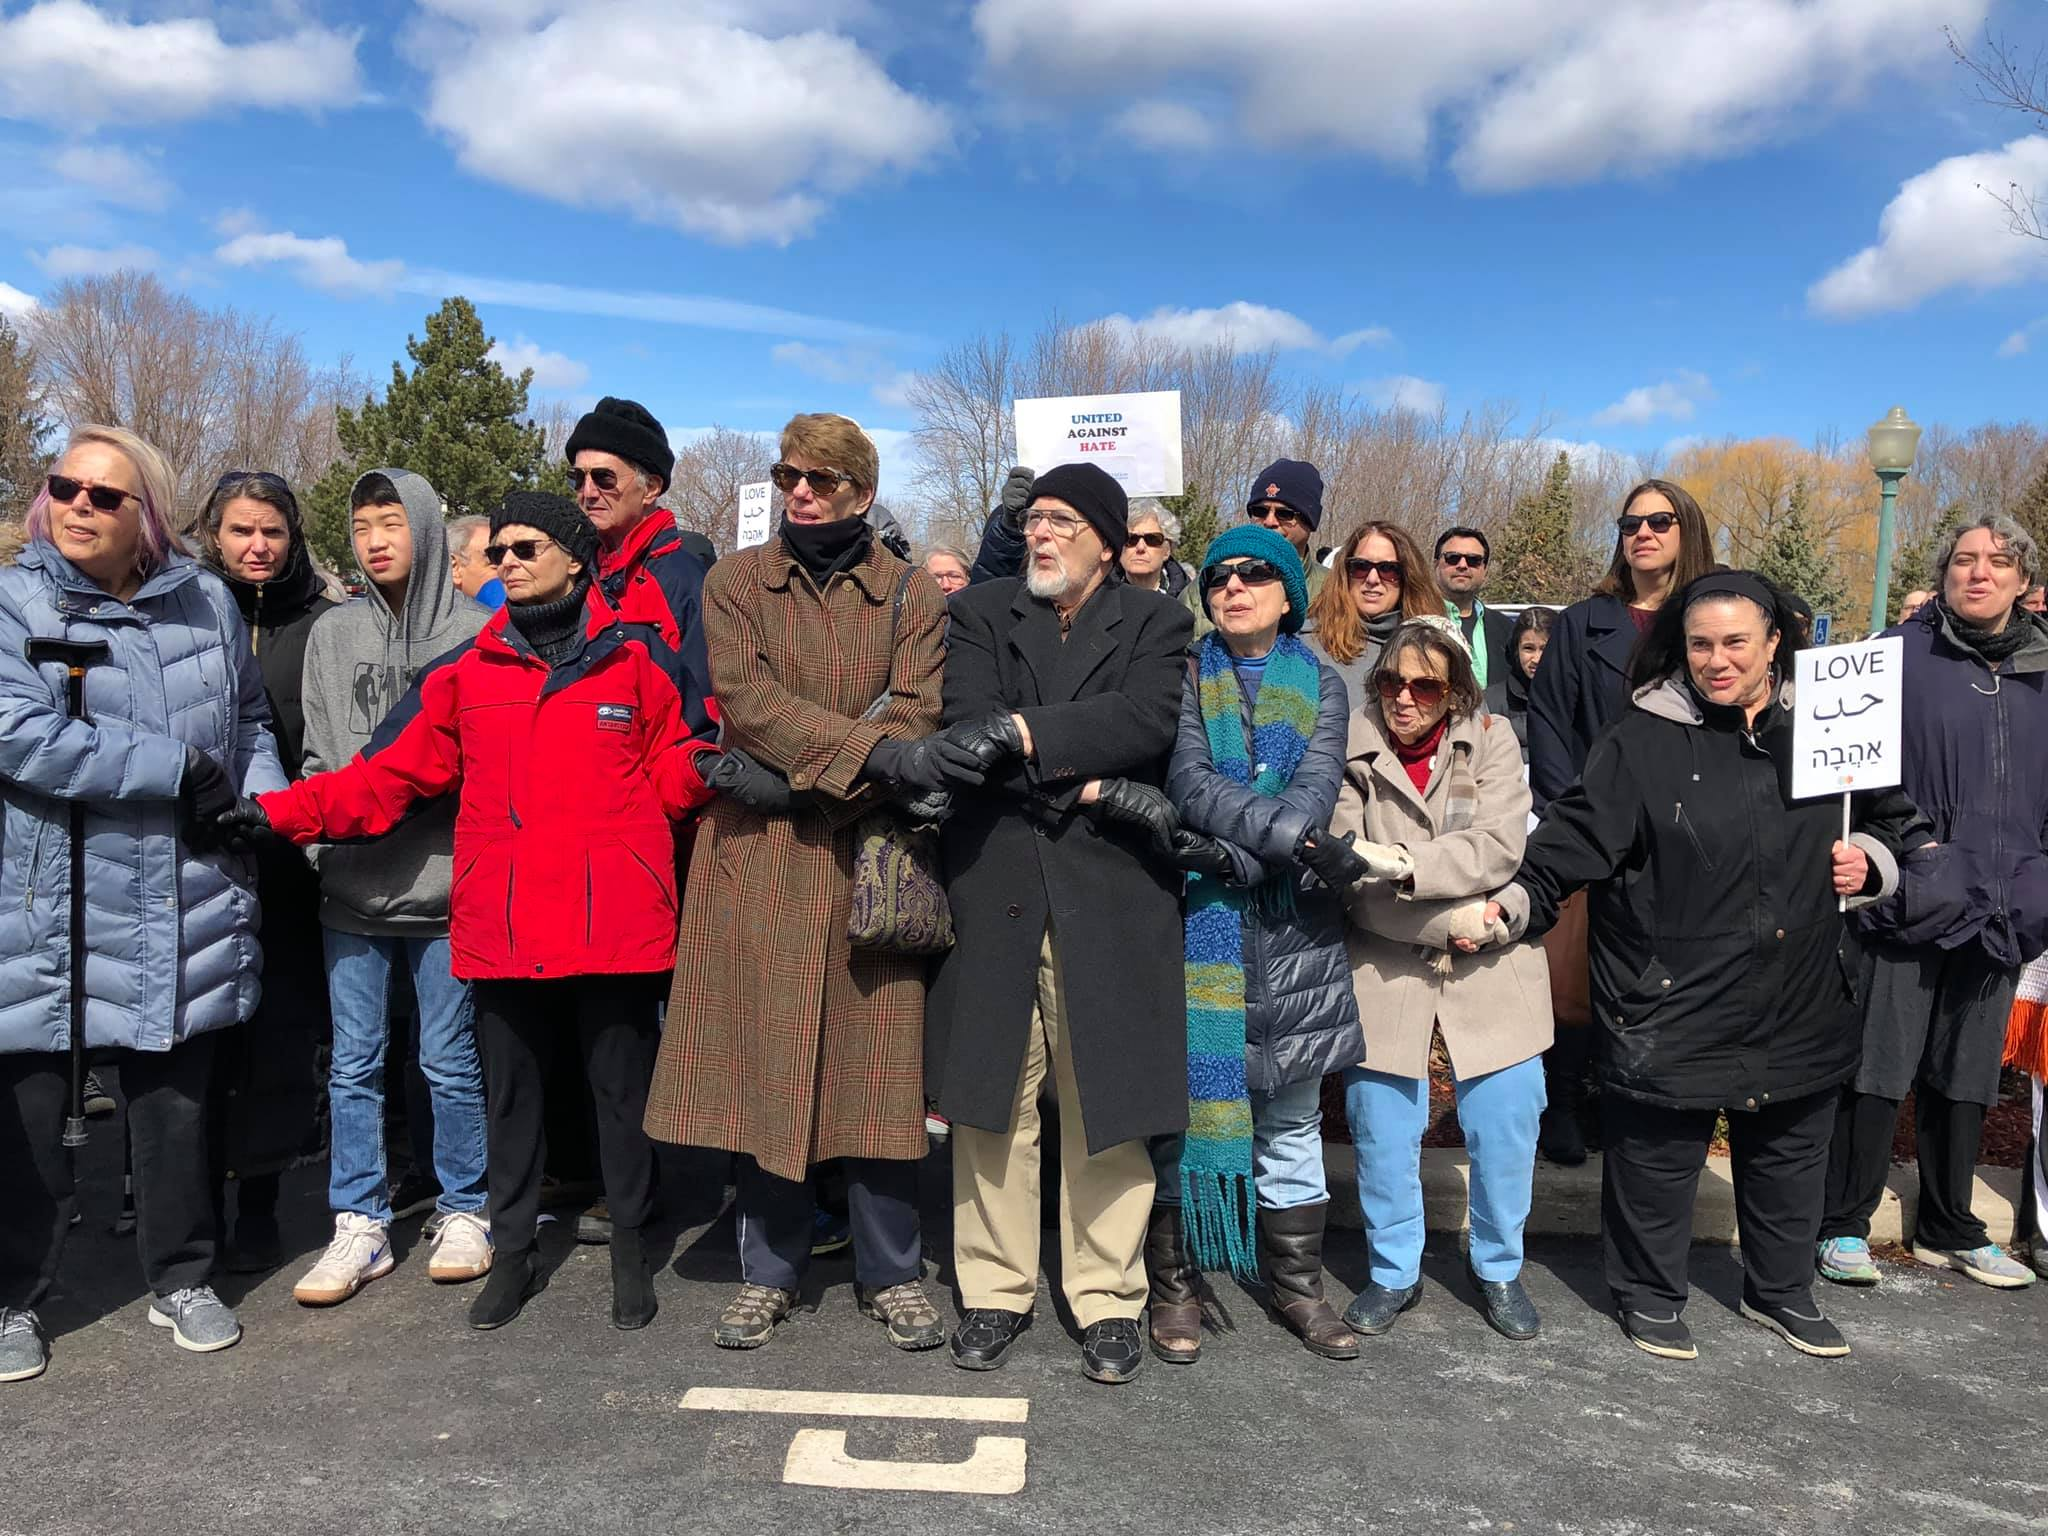 Rochester community stands with Muslims